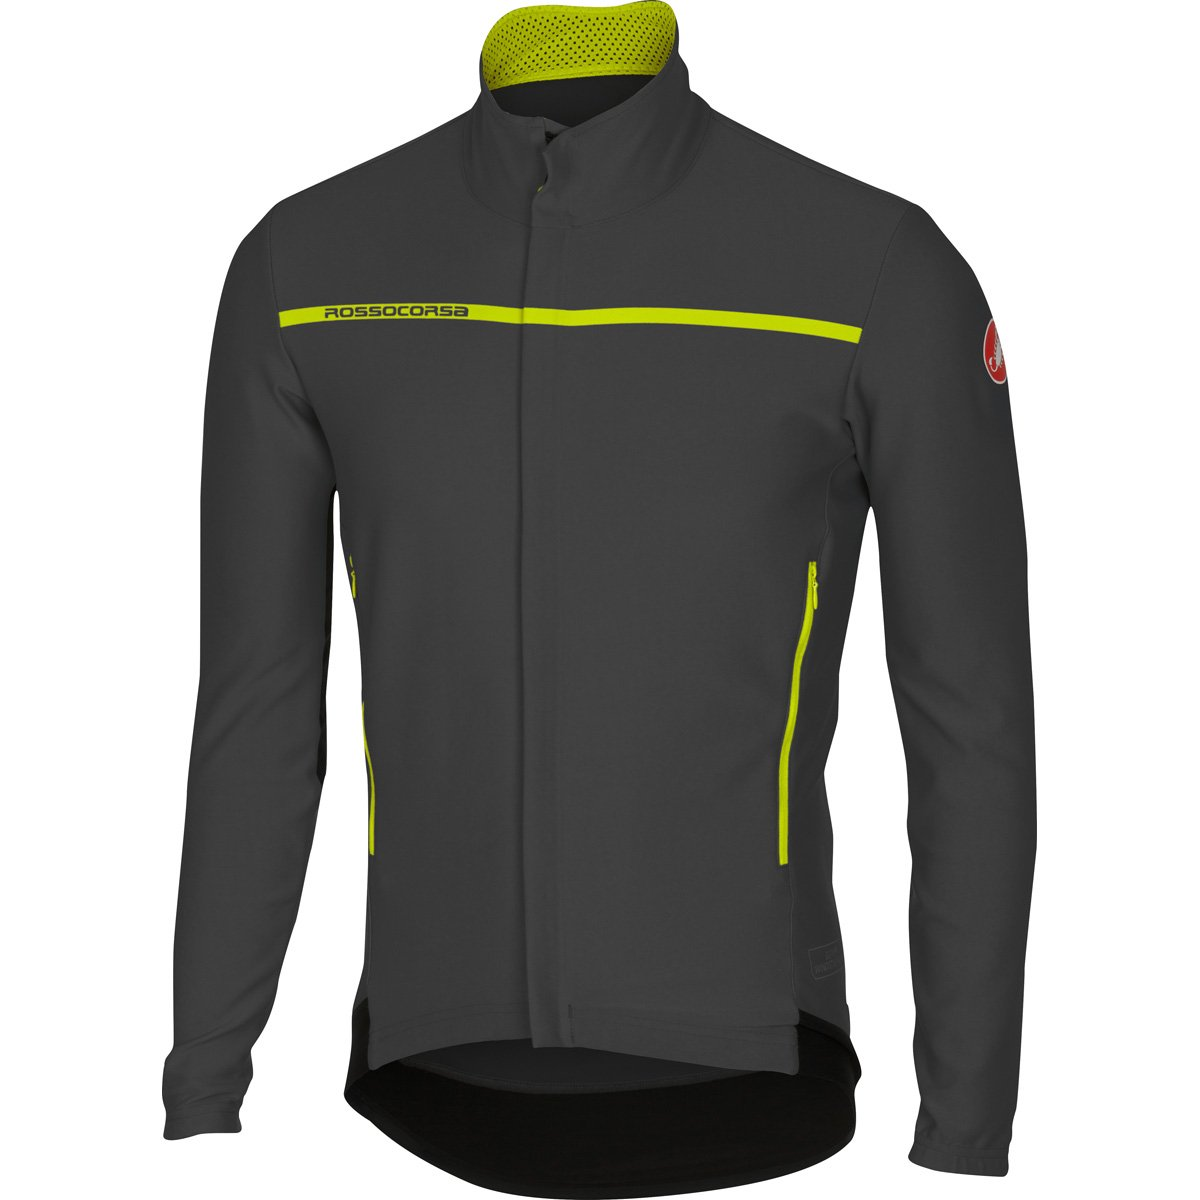 4a8349acc Amazon.com   Castelli 2016 17 Men s Perfetto Long Sleeve Cycling Jacket -  B16507   Sports   Outdoors